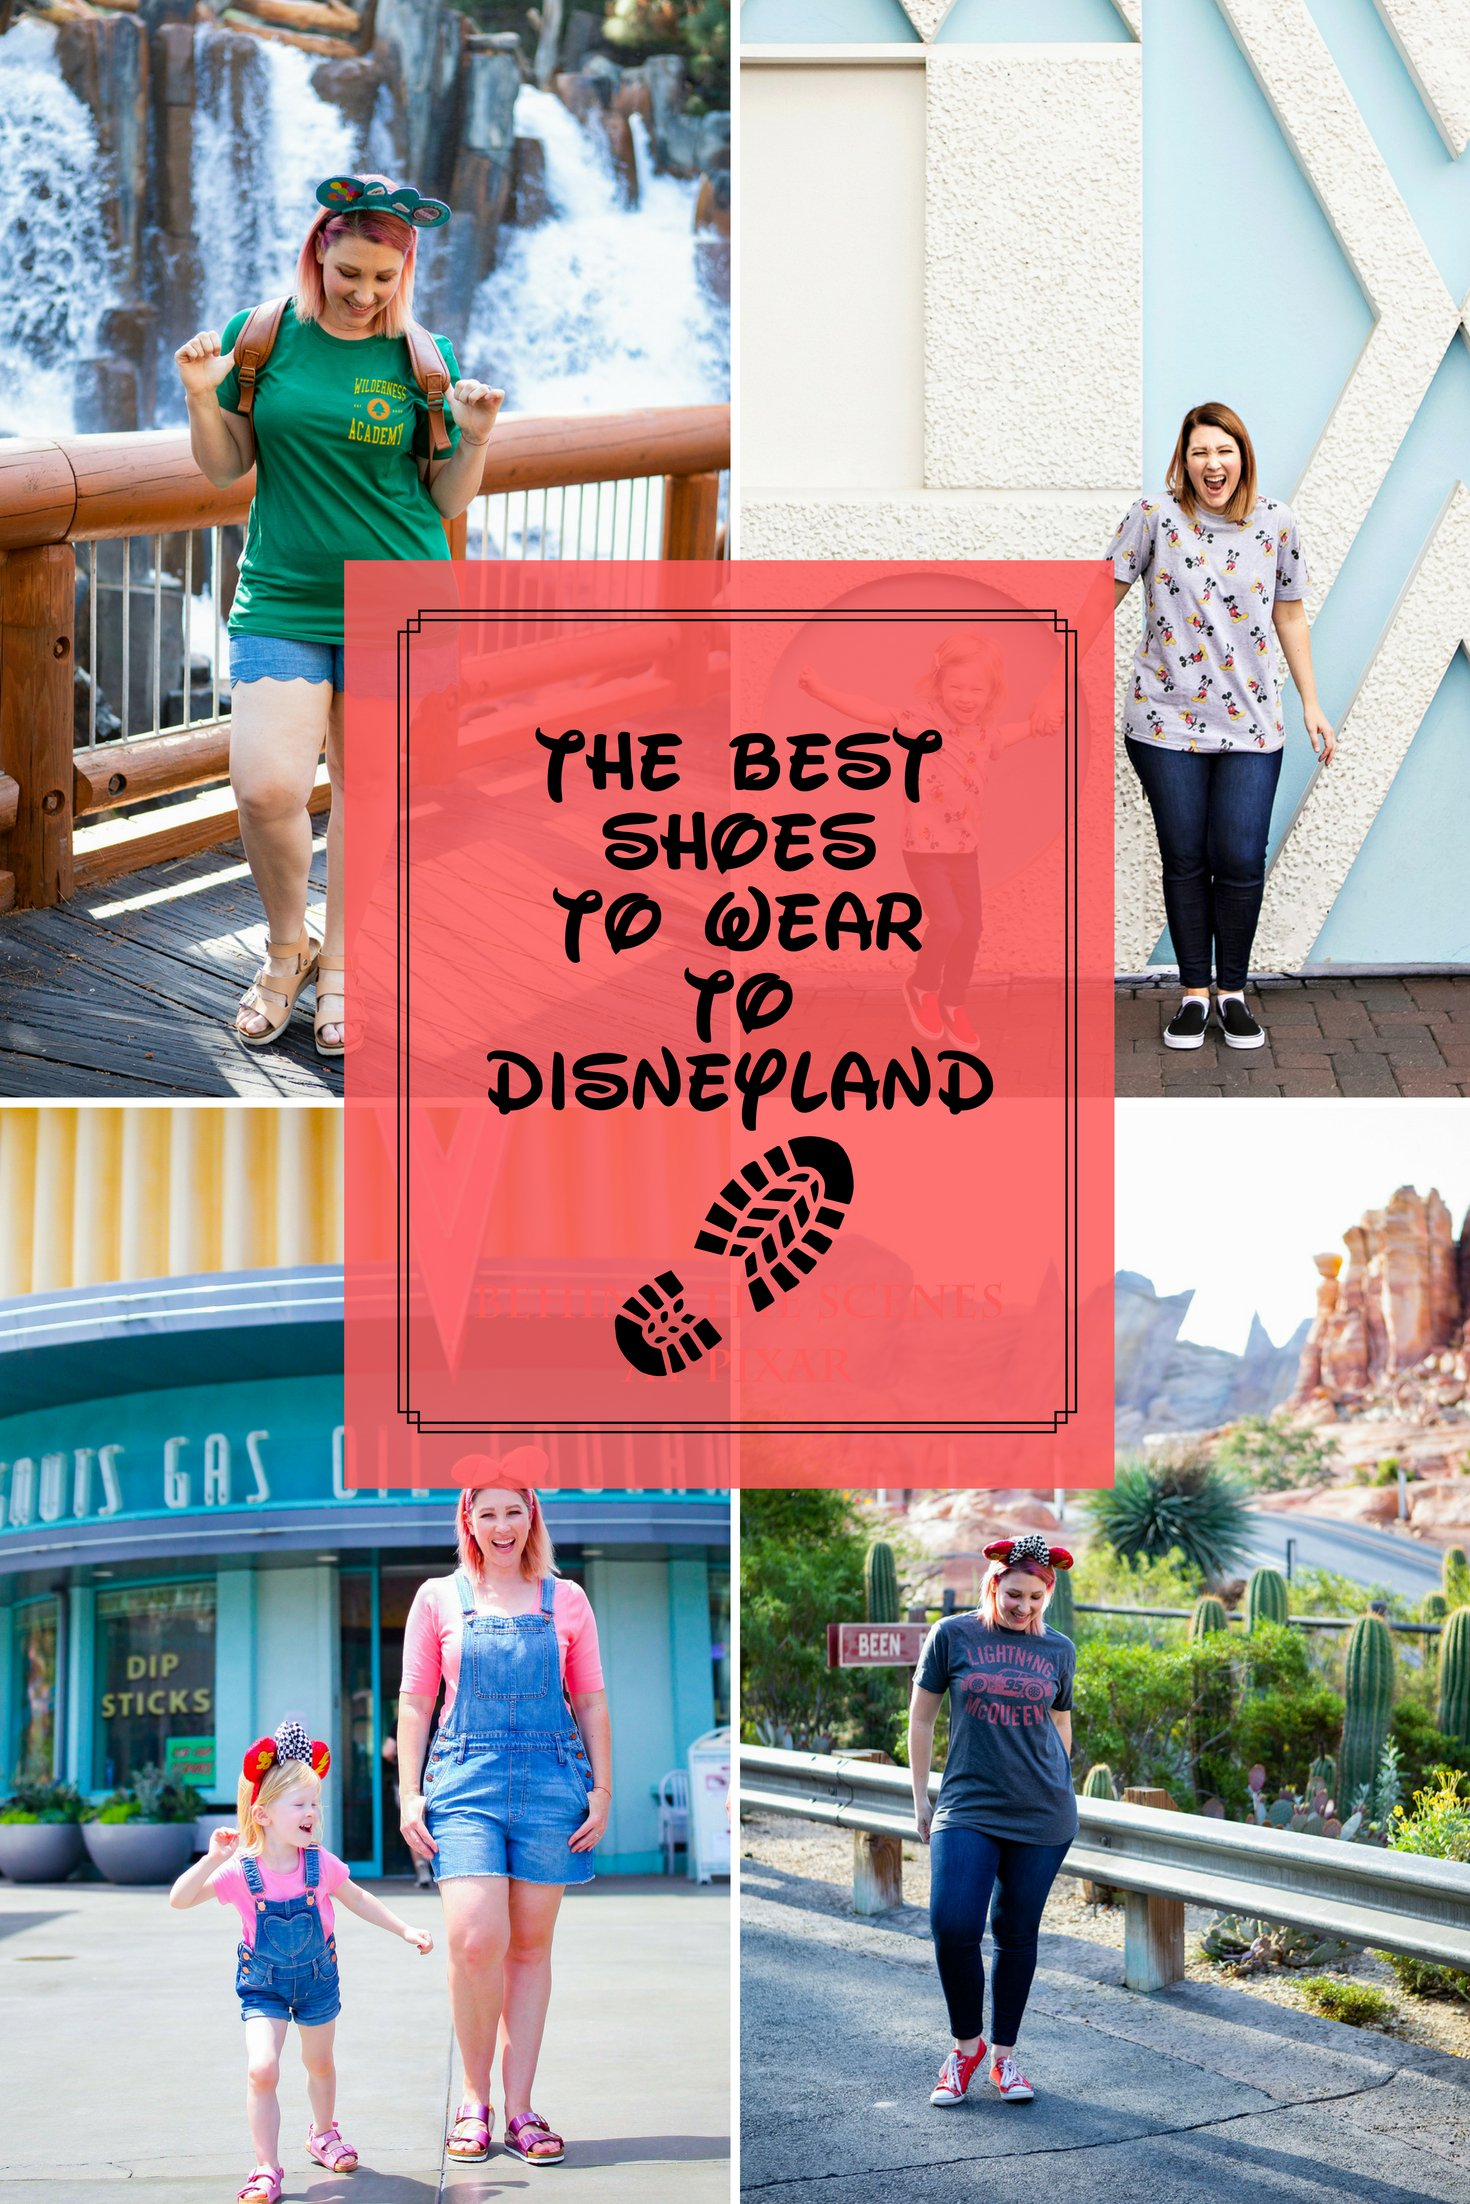 Looking for the perfect shoes to go with your Disneyland outfits? This post breaks down what shoes to wear to Disneyland by season for maximum style and comfort!